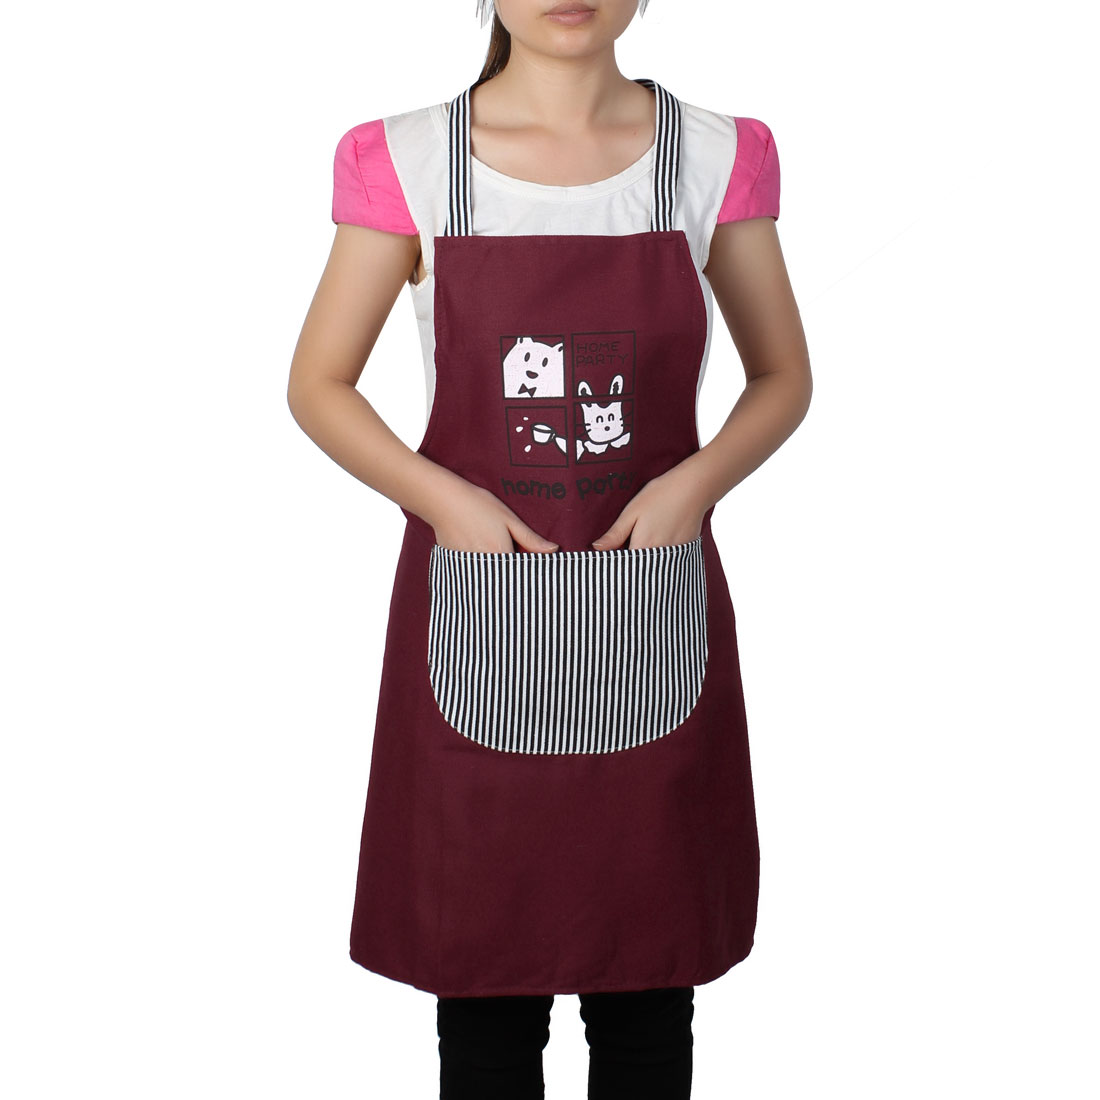 Women Home Kitchen Restaurant Bib Cooking Pocket Aprons Burgundy